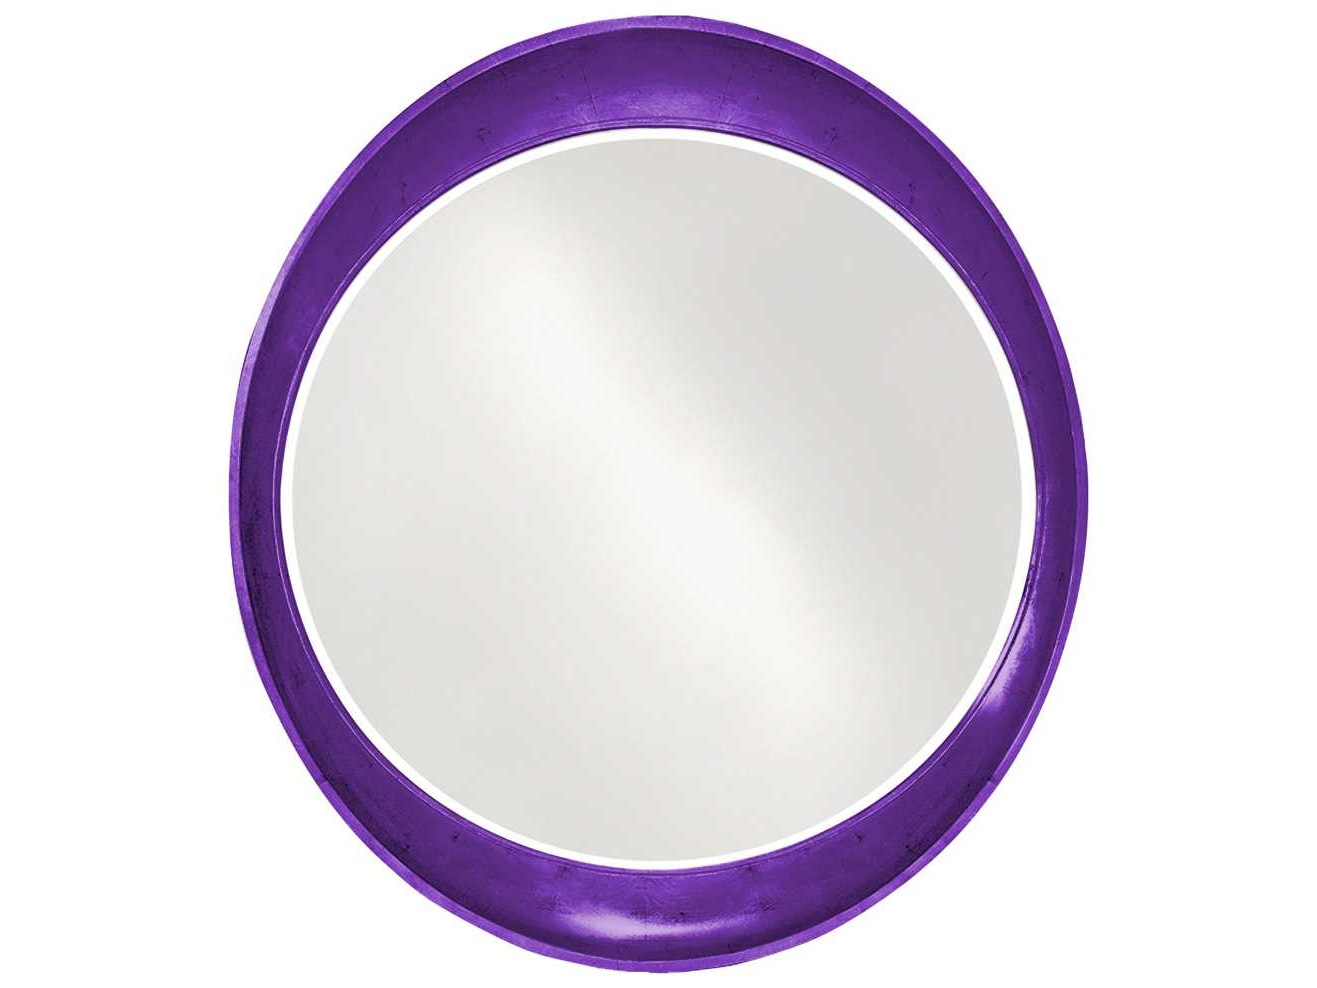 Purple Wall Mirrors For Most Recent Howard Elliott Ellipse 35 X 39 Oval Glossy Royal Purple Wall Mirror (View 9 of 20)